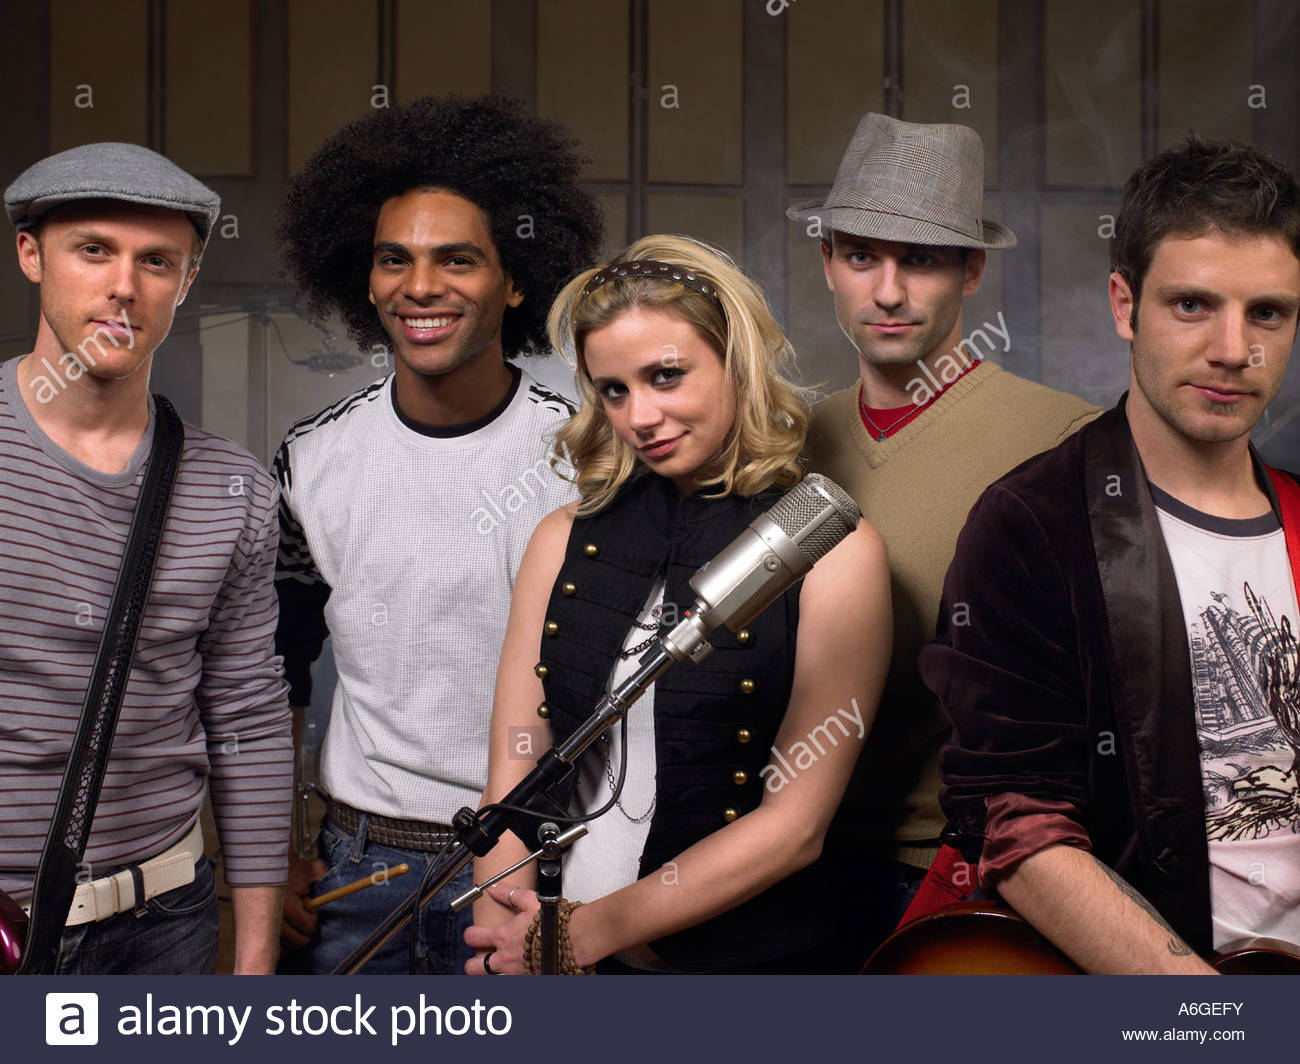 Portrait of a rock band - Stock Image